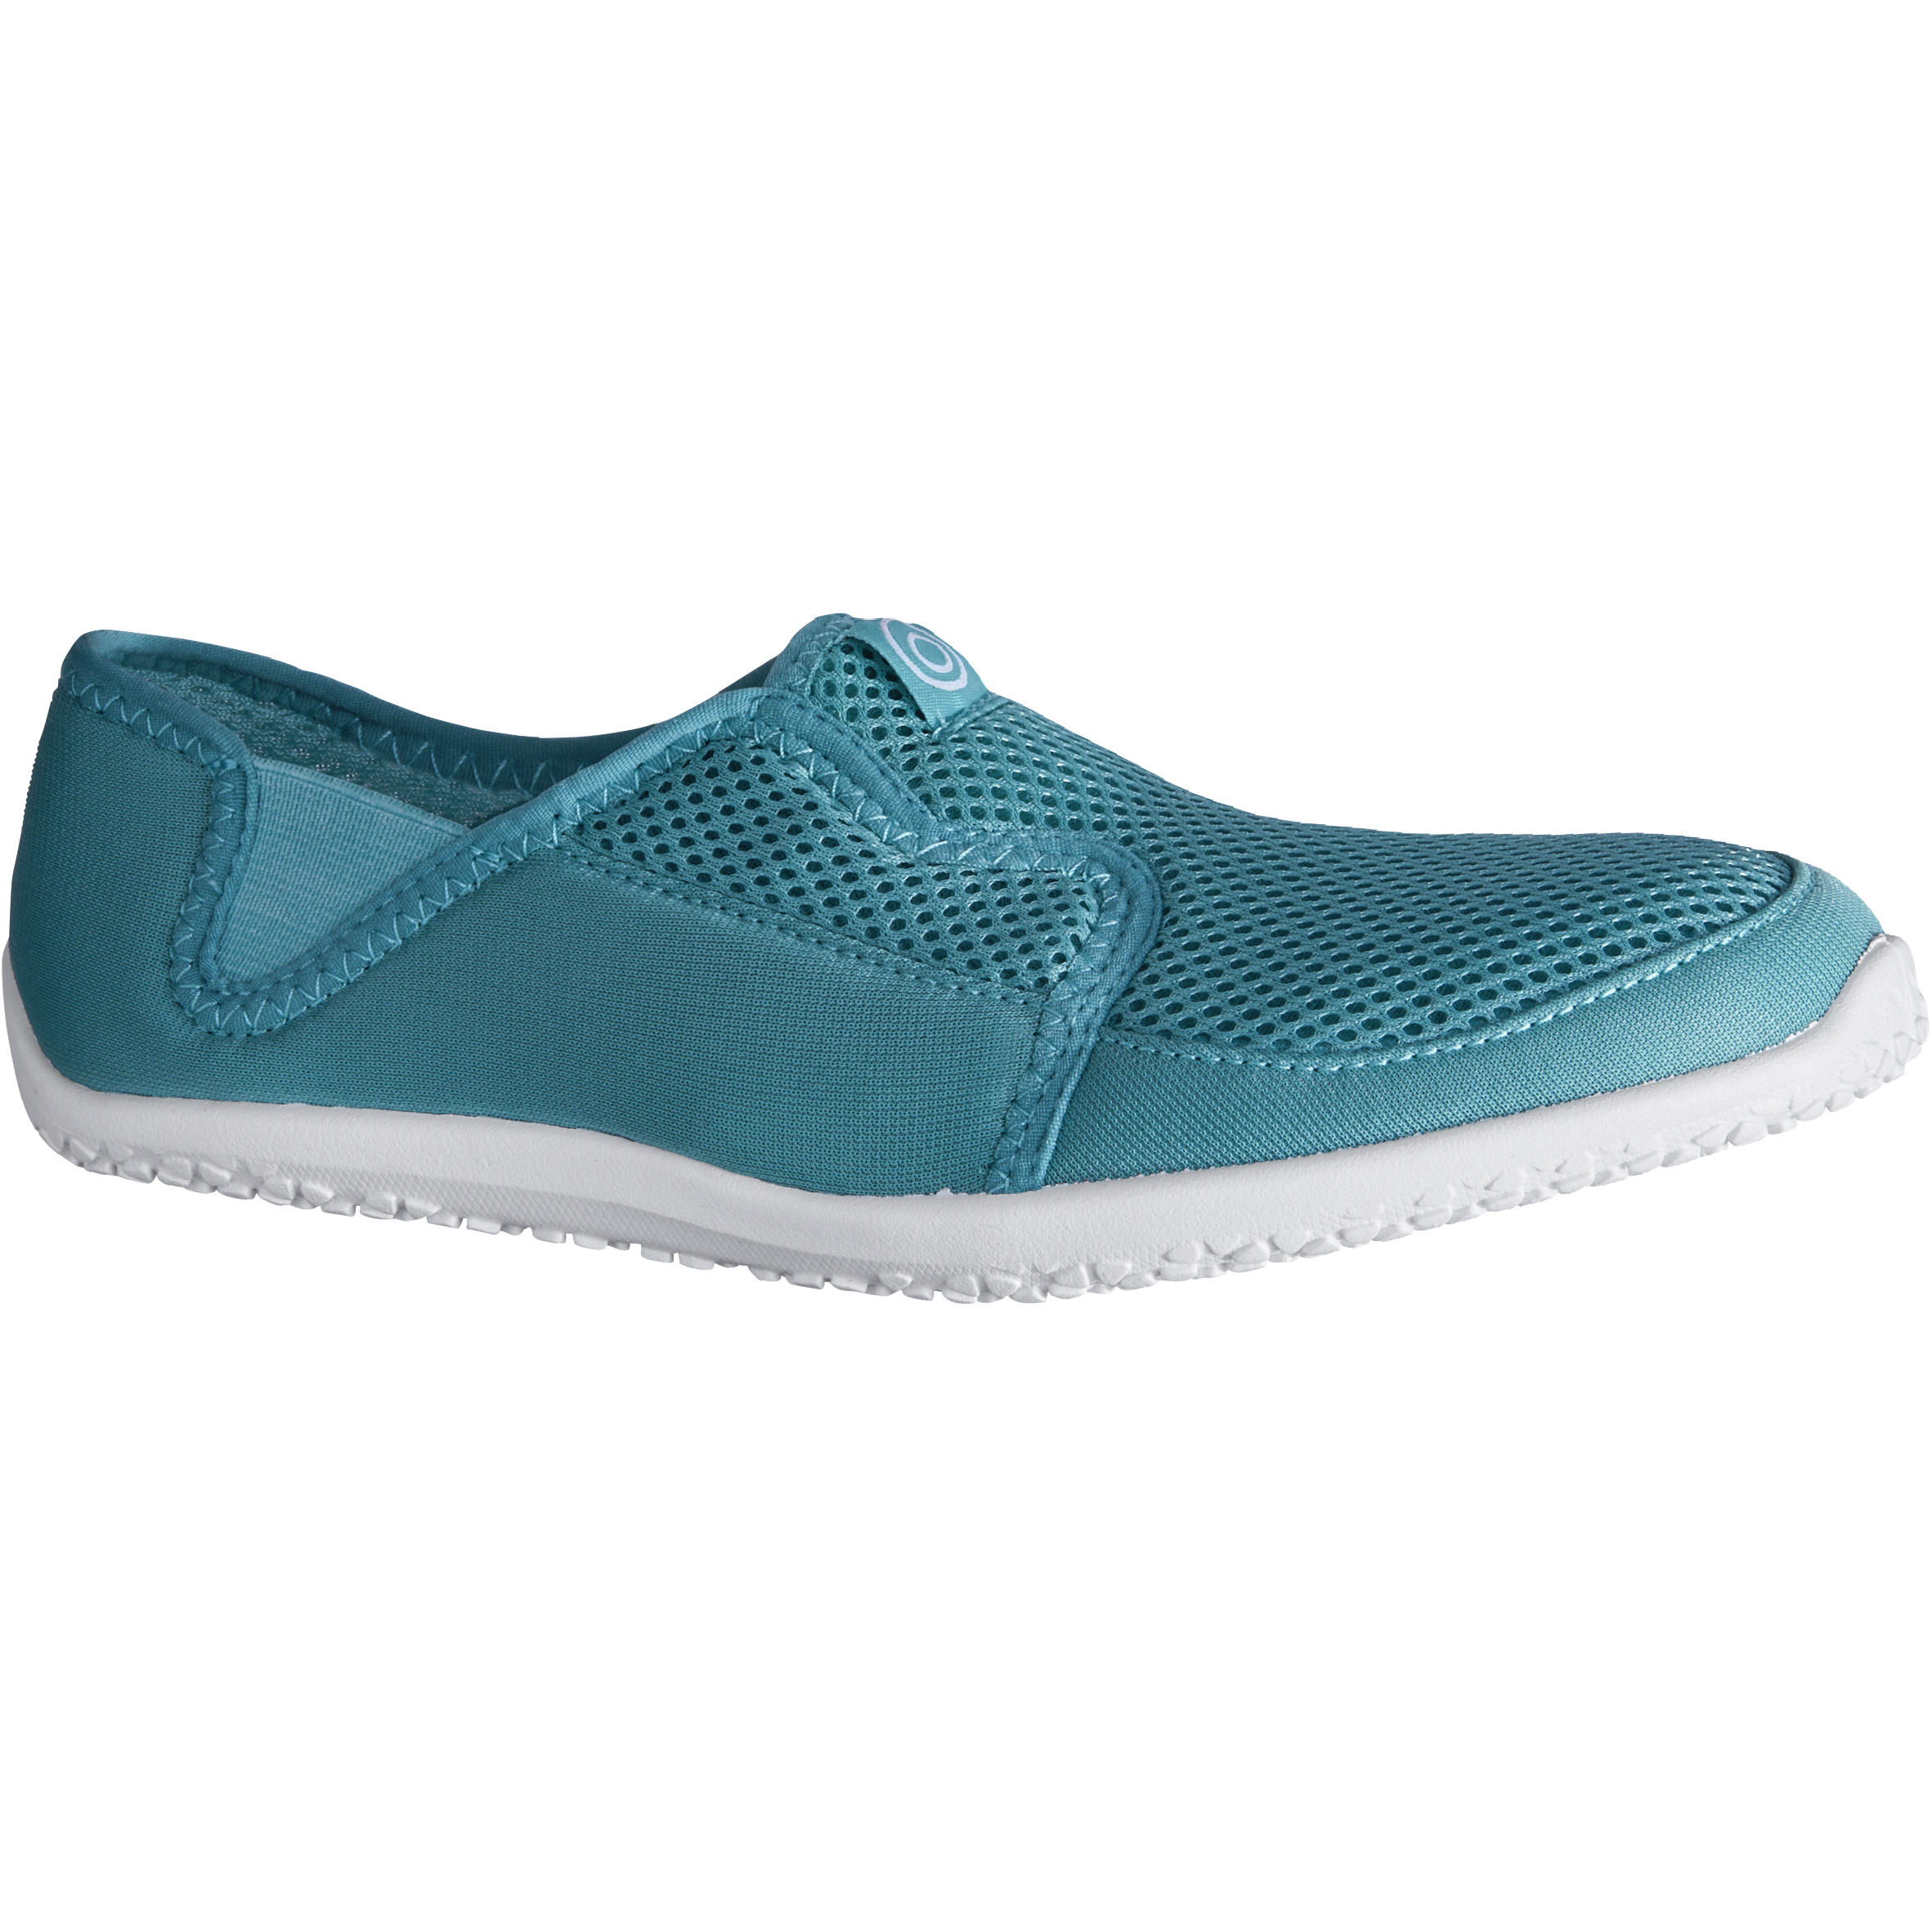 Affordable Water Shoes|Subea